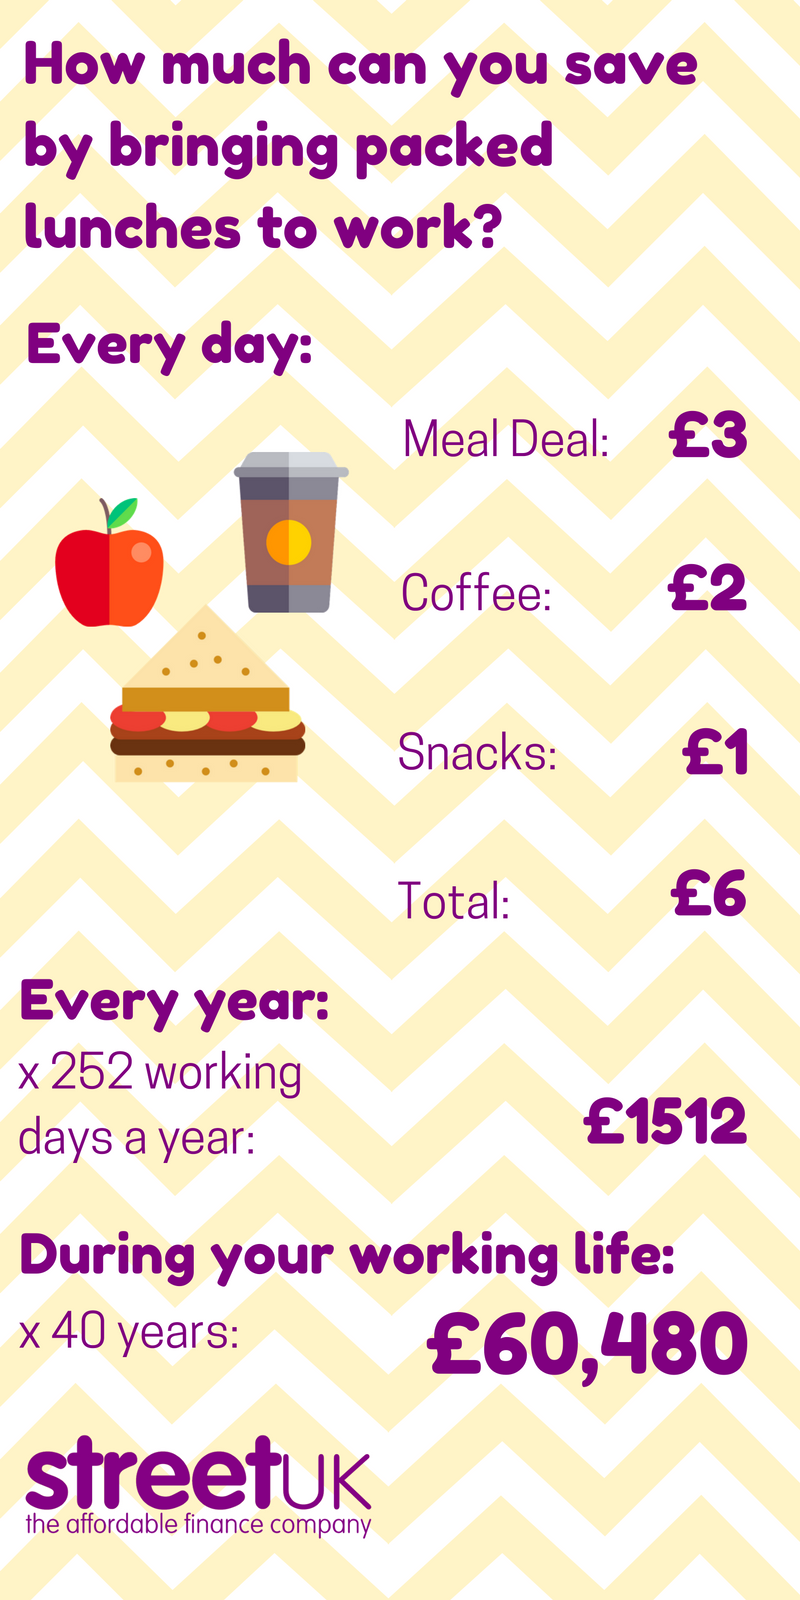 Street UK - How much can you save by bringing packed lunches to work?